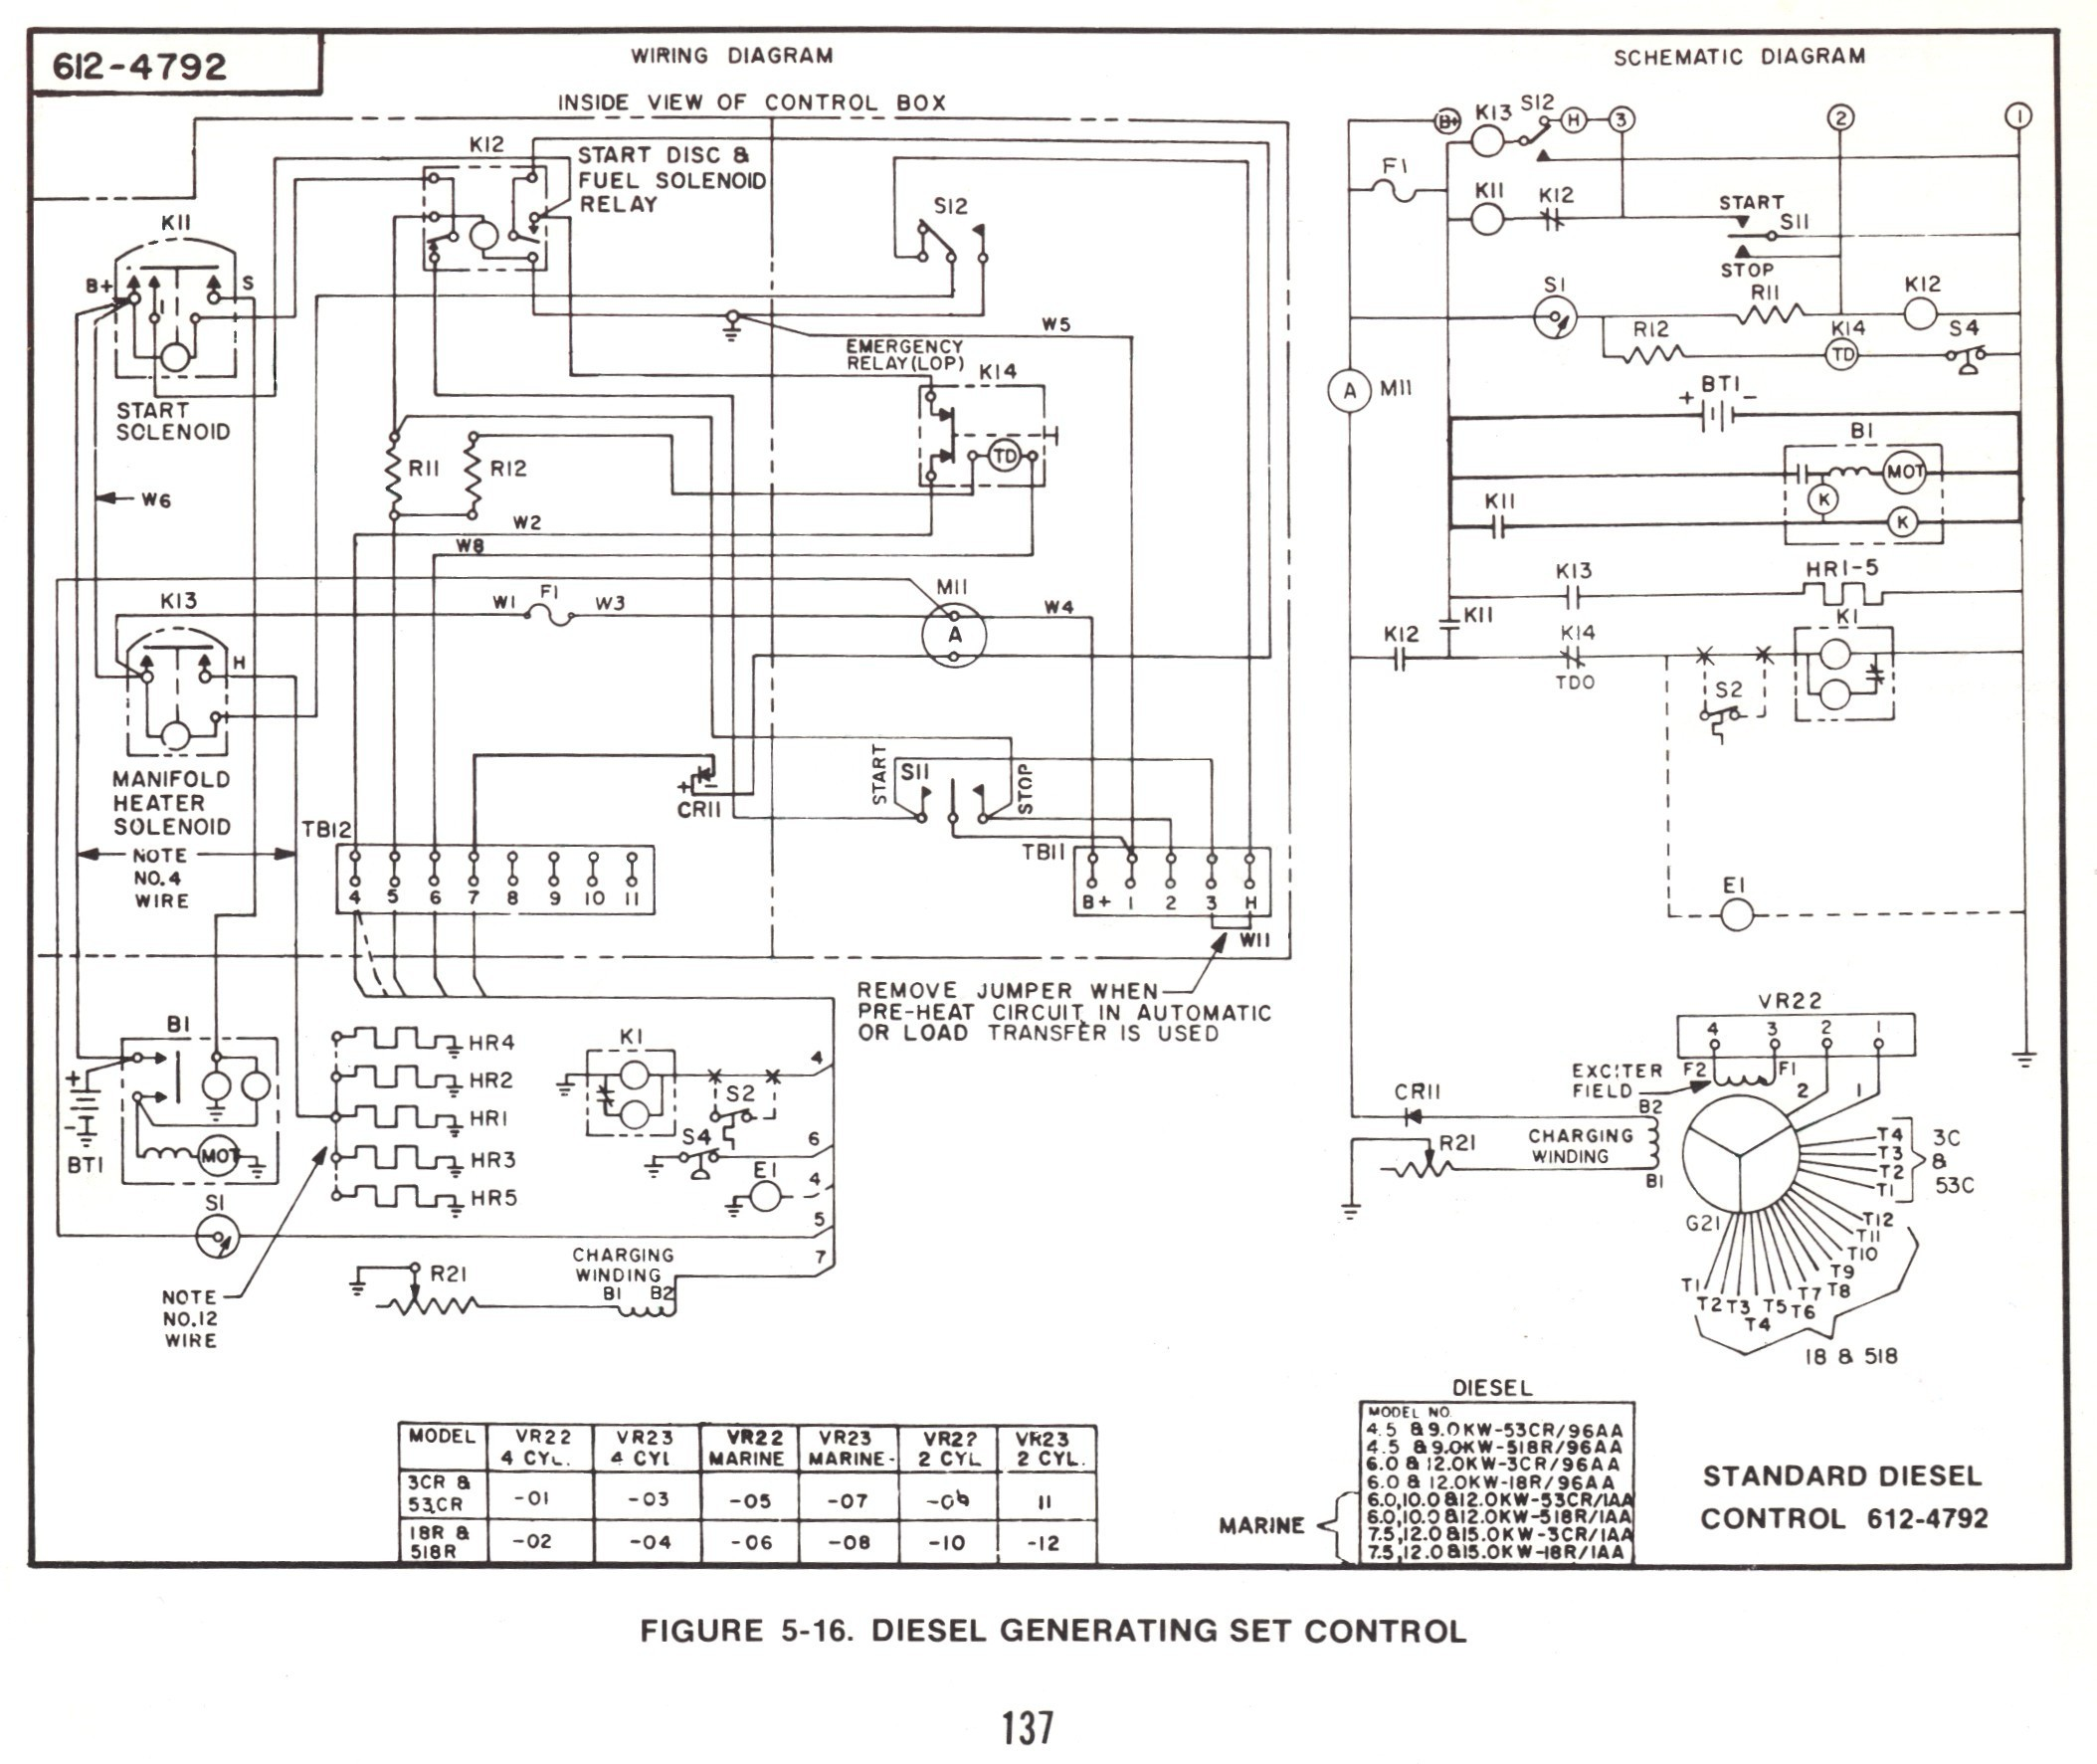 onan 6500 generator wiring diagram all wiring diagram  onan homesite 6500 generator wiring diagram #3